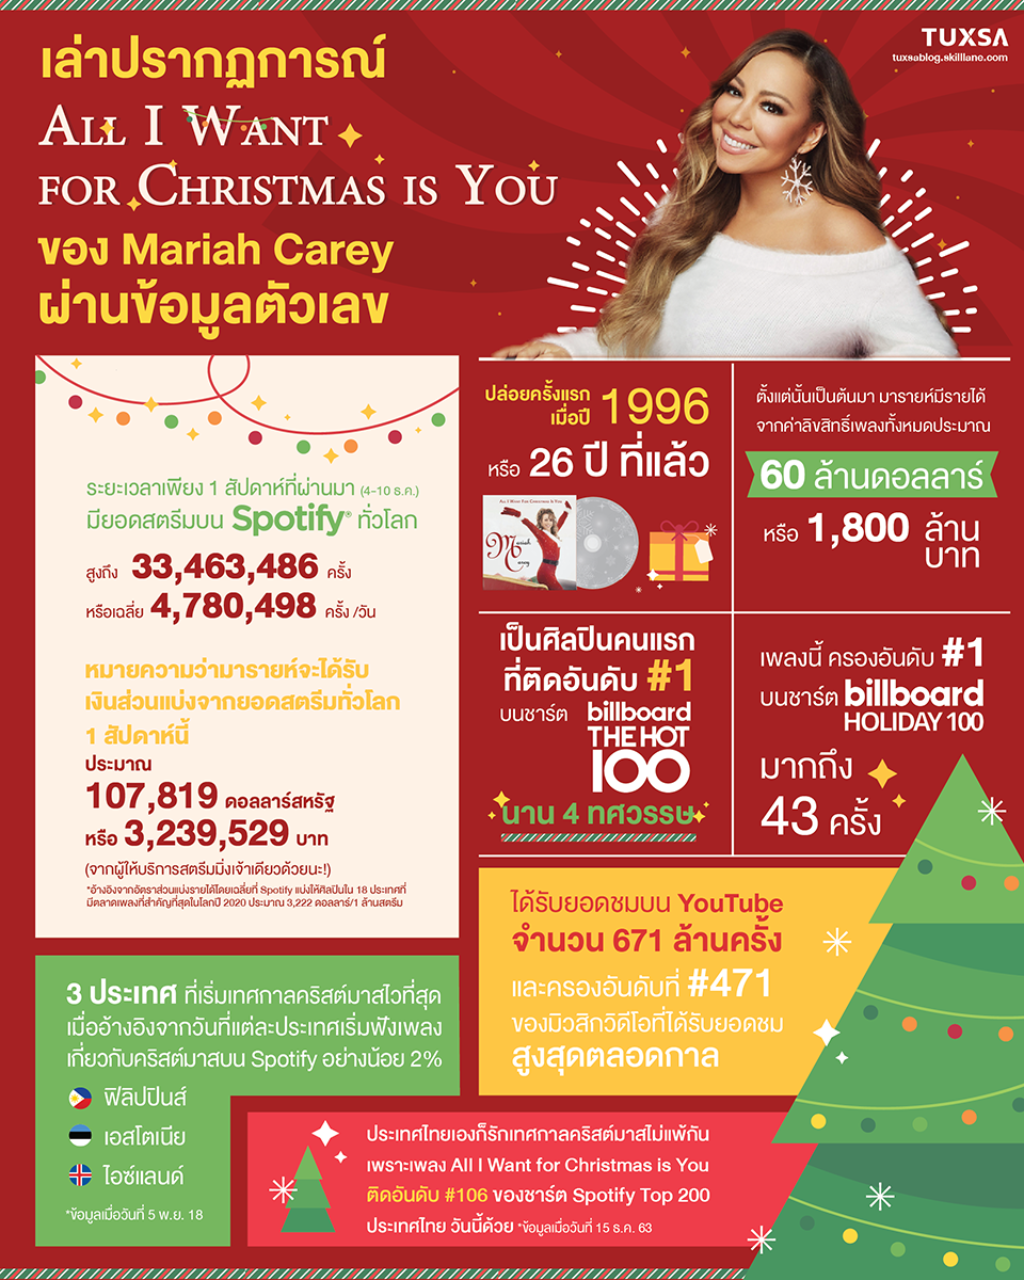 all-i-want-for-christmas-is-you-success-by-the-numbers